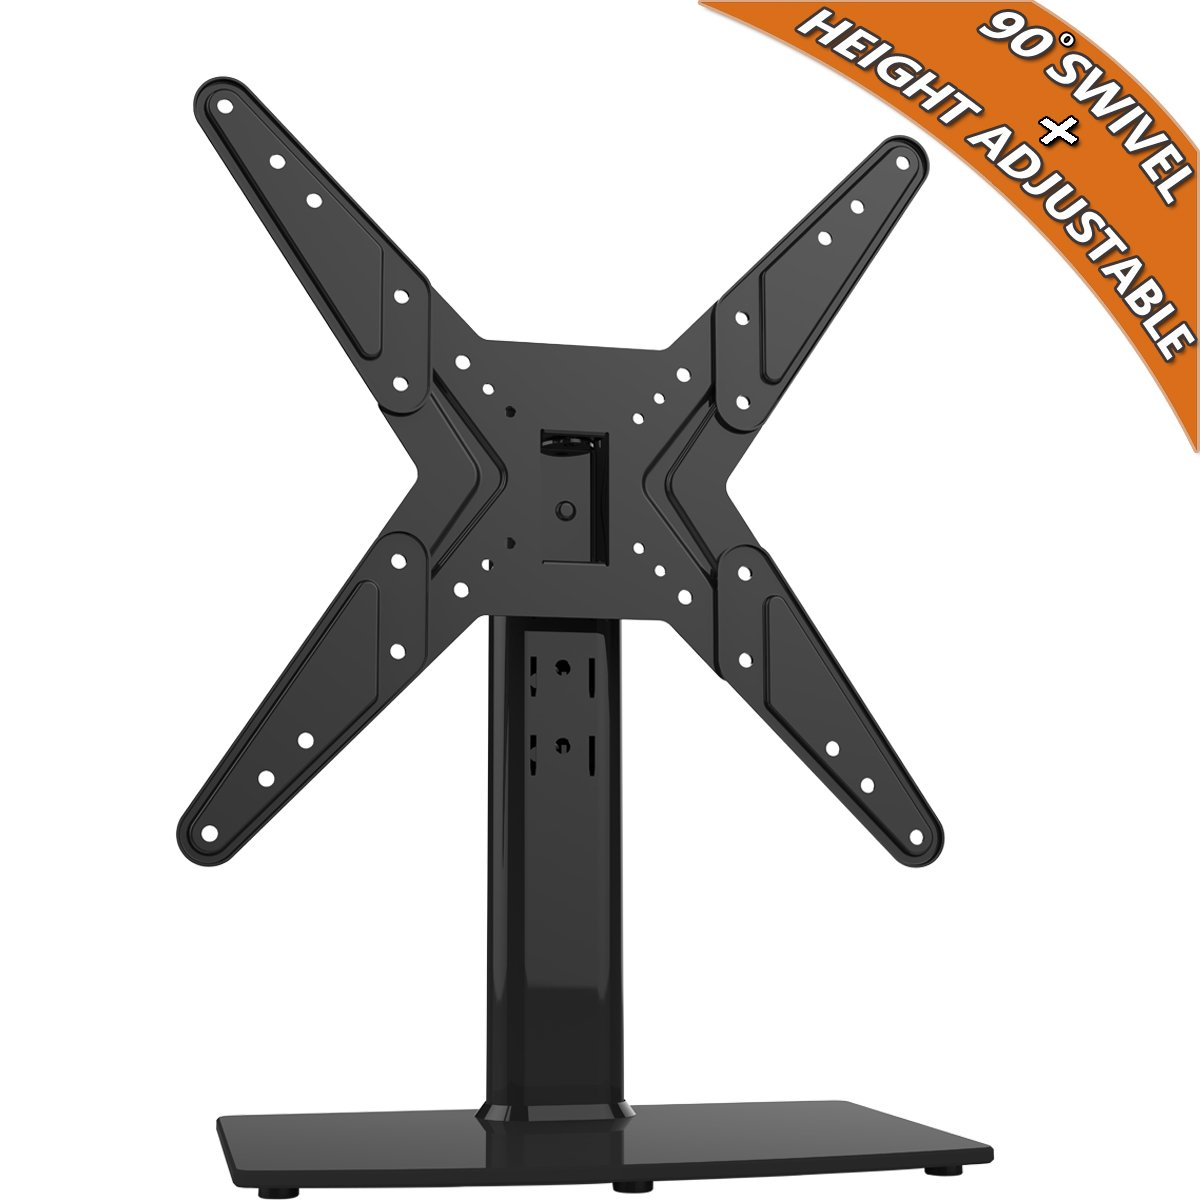 Hemudu Universal Swivel TV Stand/Base Table Top TV Stand for 21 to 42 inch TVs with 90 Degree Swivel, 4 Level Height Adjustable, Heavy Duty Tempered Glass Base, Holds up to 99lbs, HT02B-002